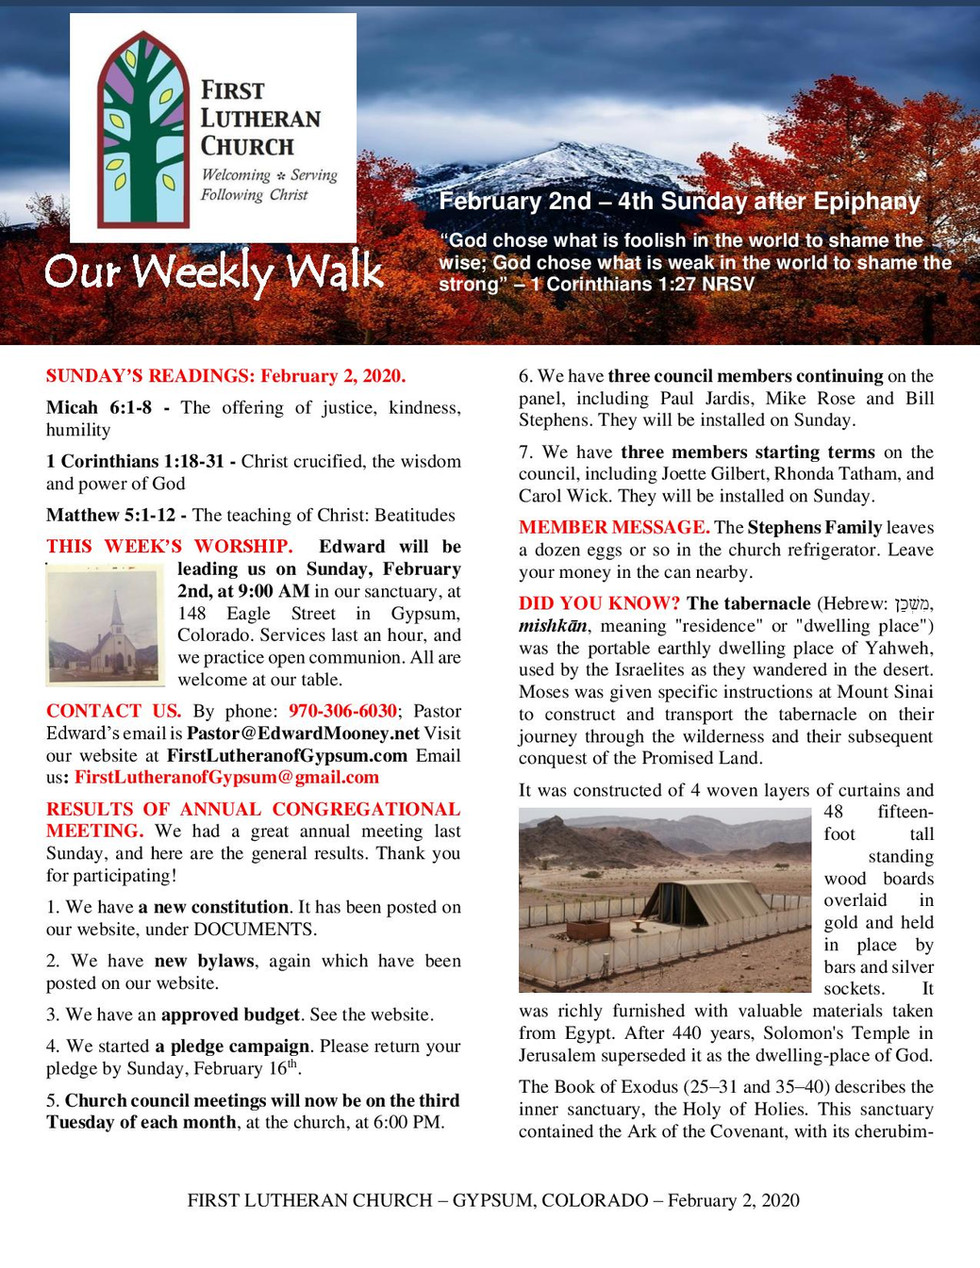 Newsletter, February 2, 2020, page 1